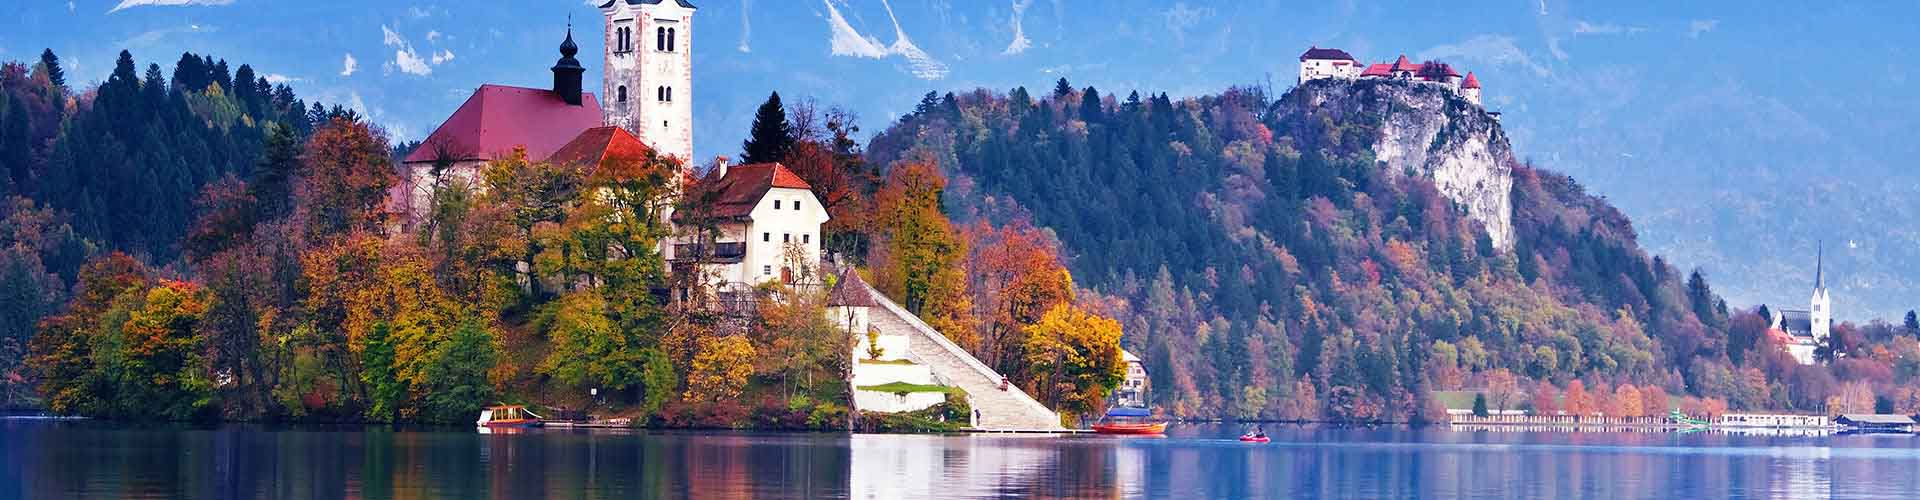 Bled – Hostels in Bled. Maps for Bled, Photos and Reviews for each hostel in Bled.